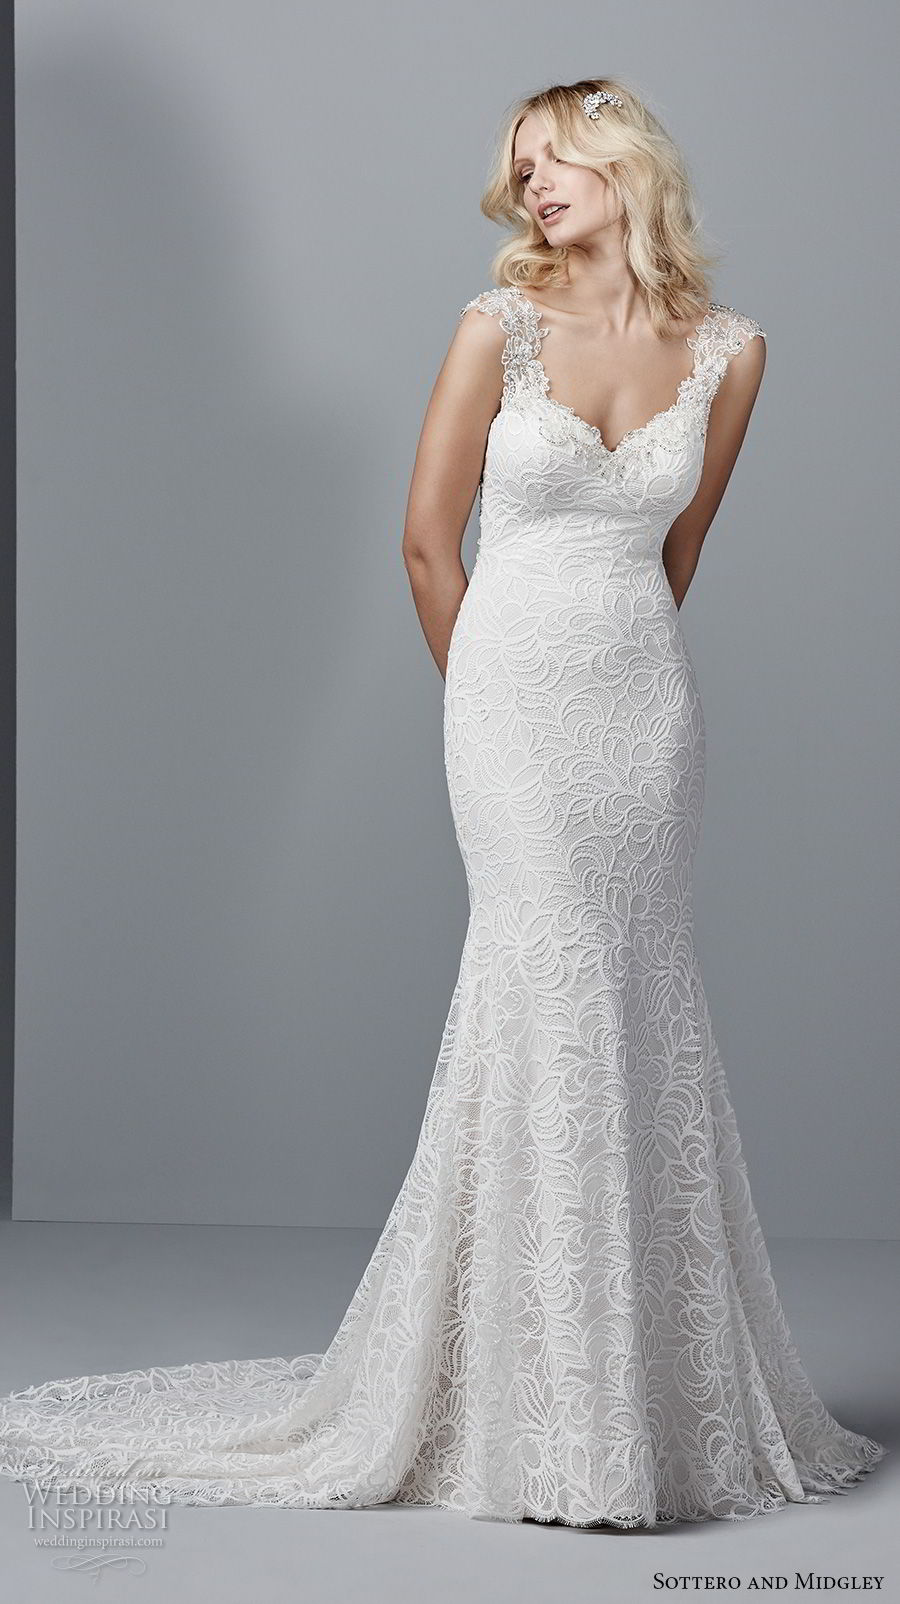 sottero midgley fall 2017 cap sleeves thick strap sweetheart neckline full embellishment elegant fit and flare wedding dress illusion lace back medium train (958) mv